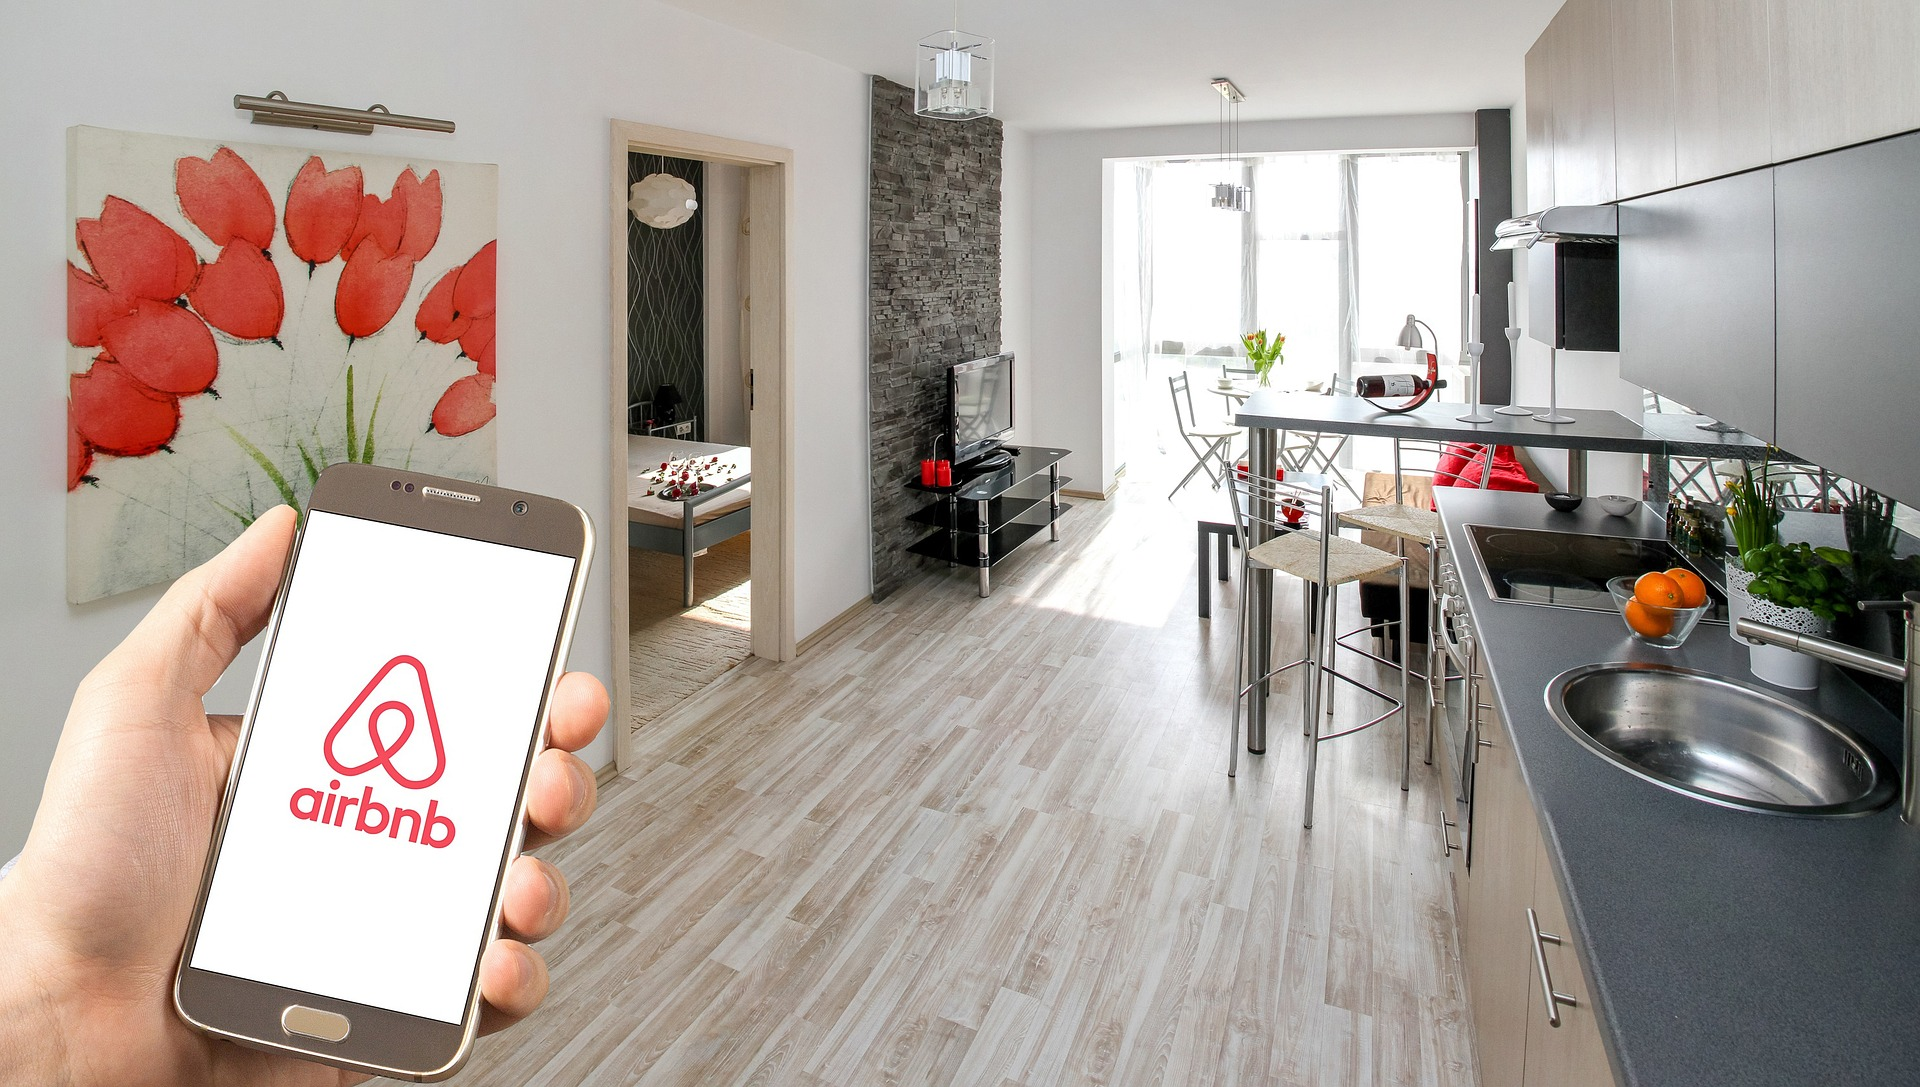 How To Buy Airbnb Stock